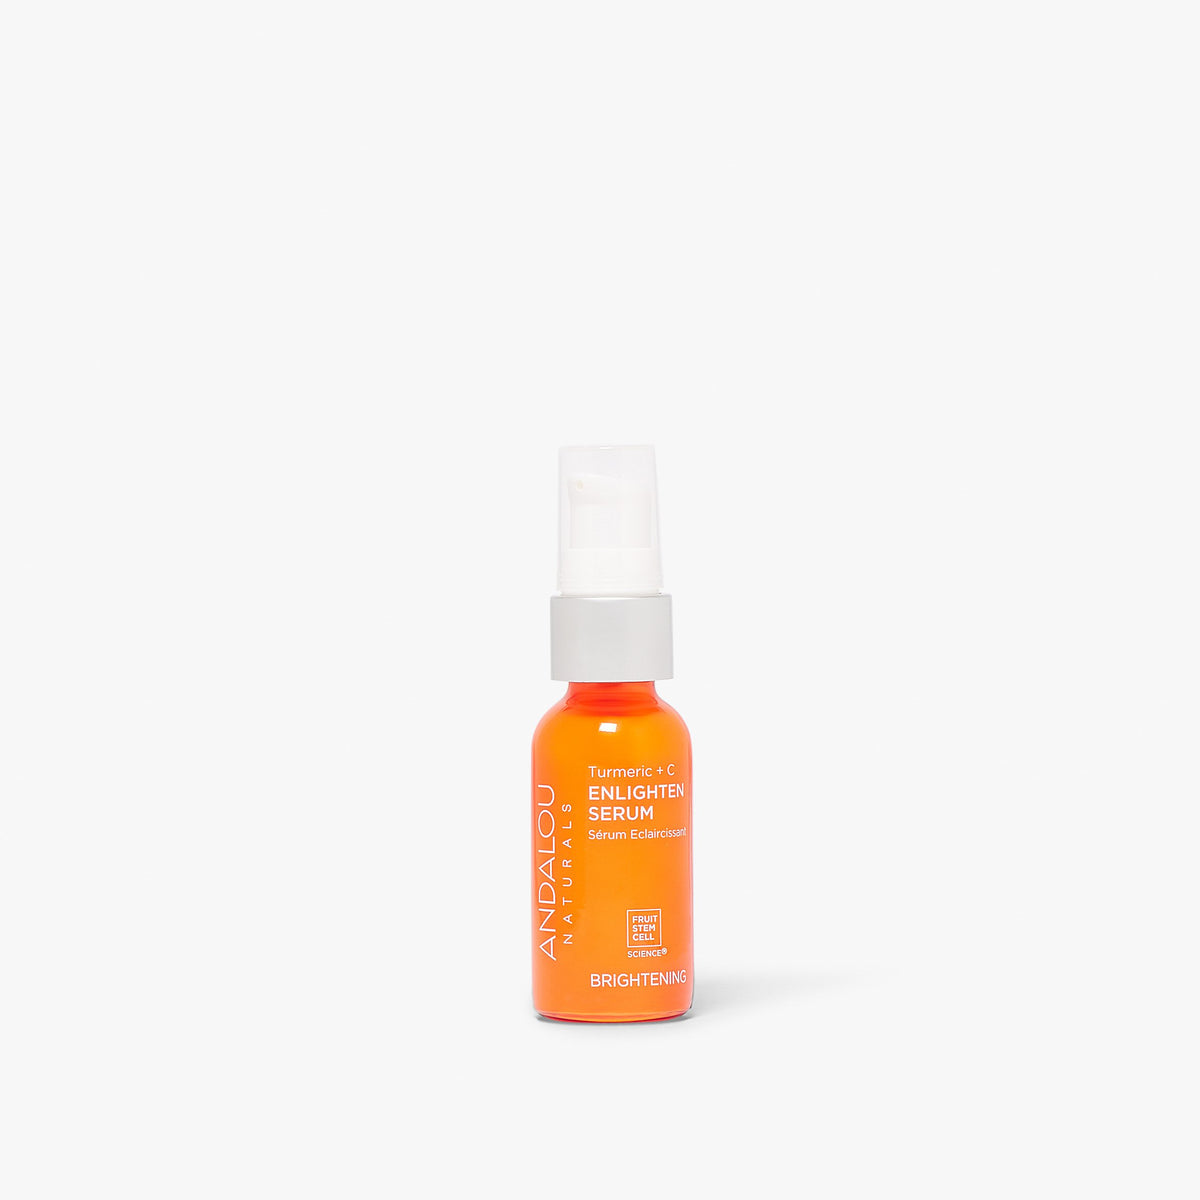 Brightening Turmeric + C Enlighten Serum - Andalou Naturals US